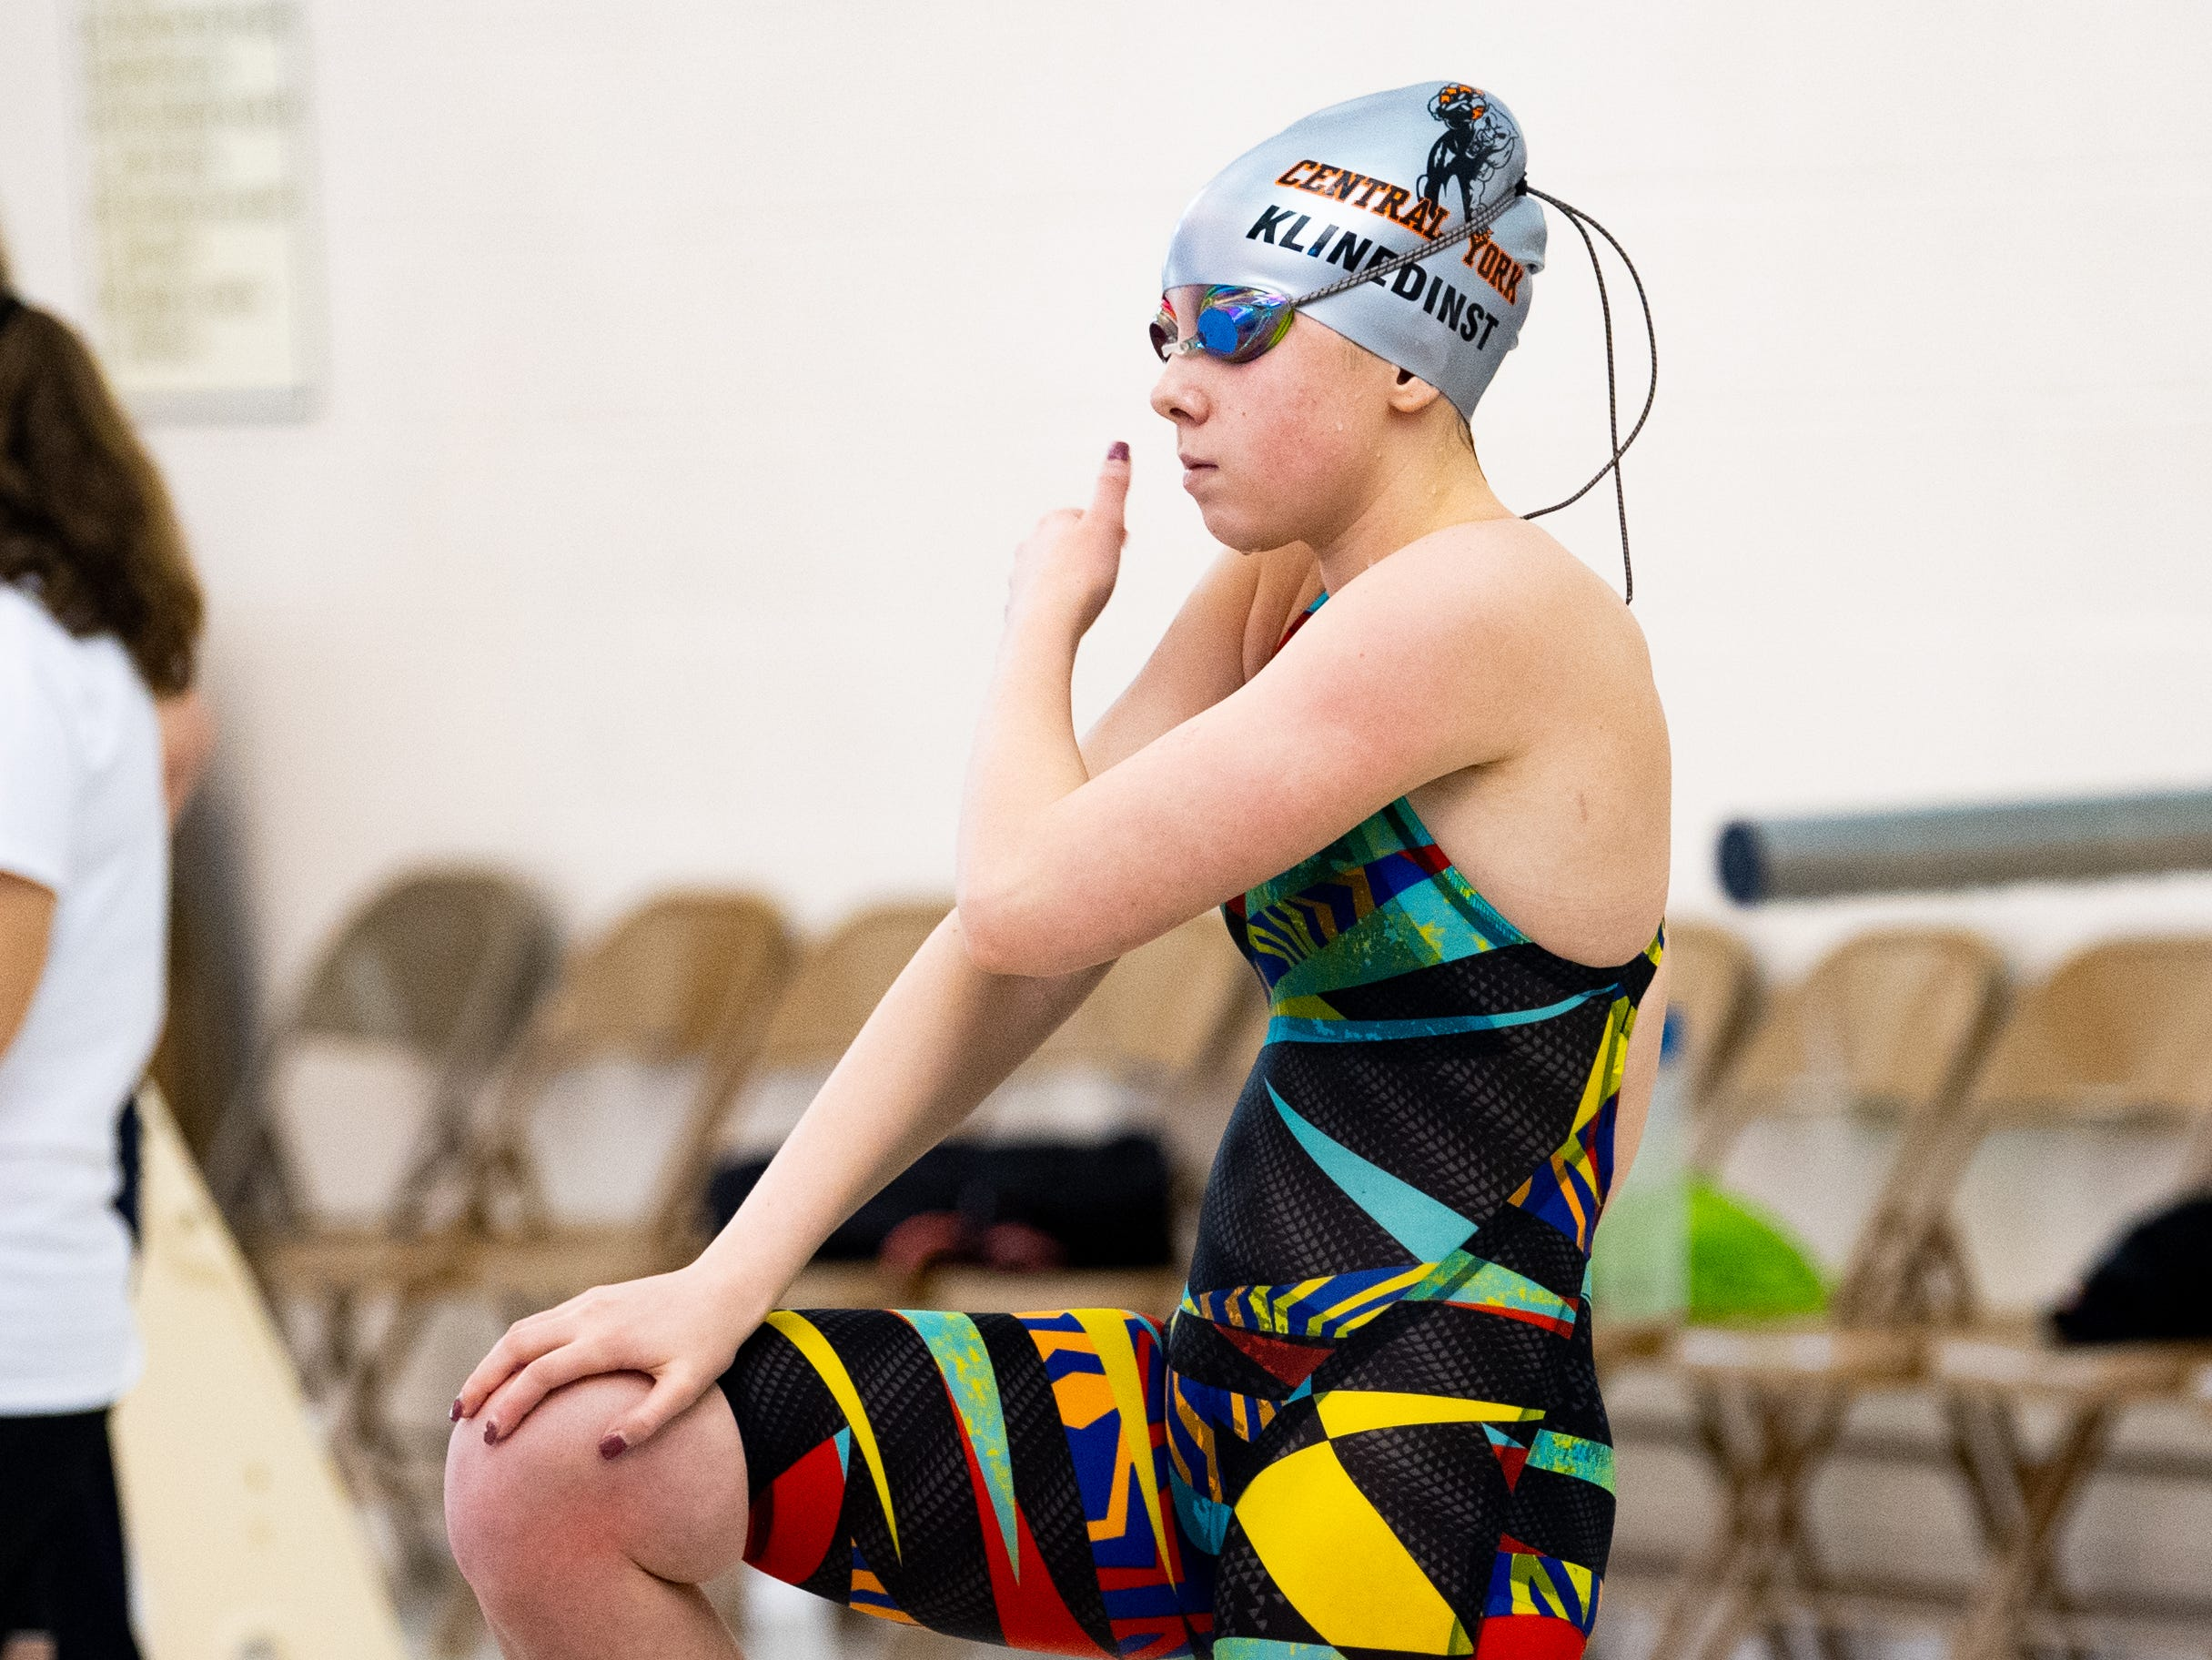 Central York's Molly Klinedinst prepares for the Girls 500 Yard Freestyle during the 2019 YAIAA Swimming and Diving Championships at Central York High School, February 9, 2019.